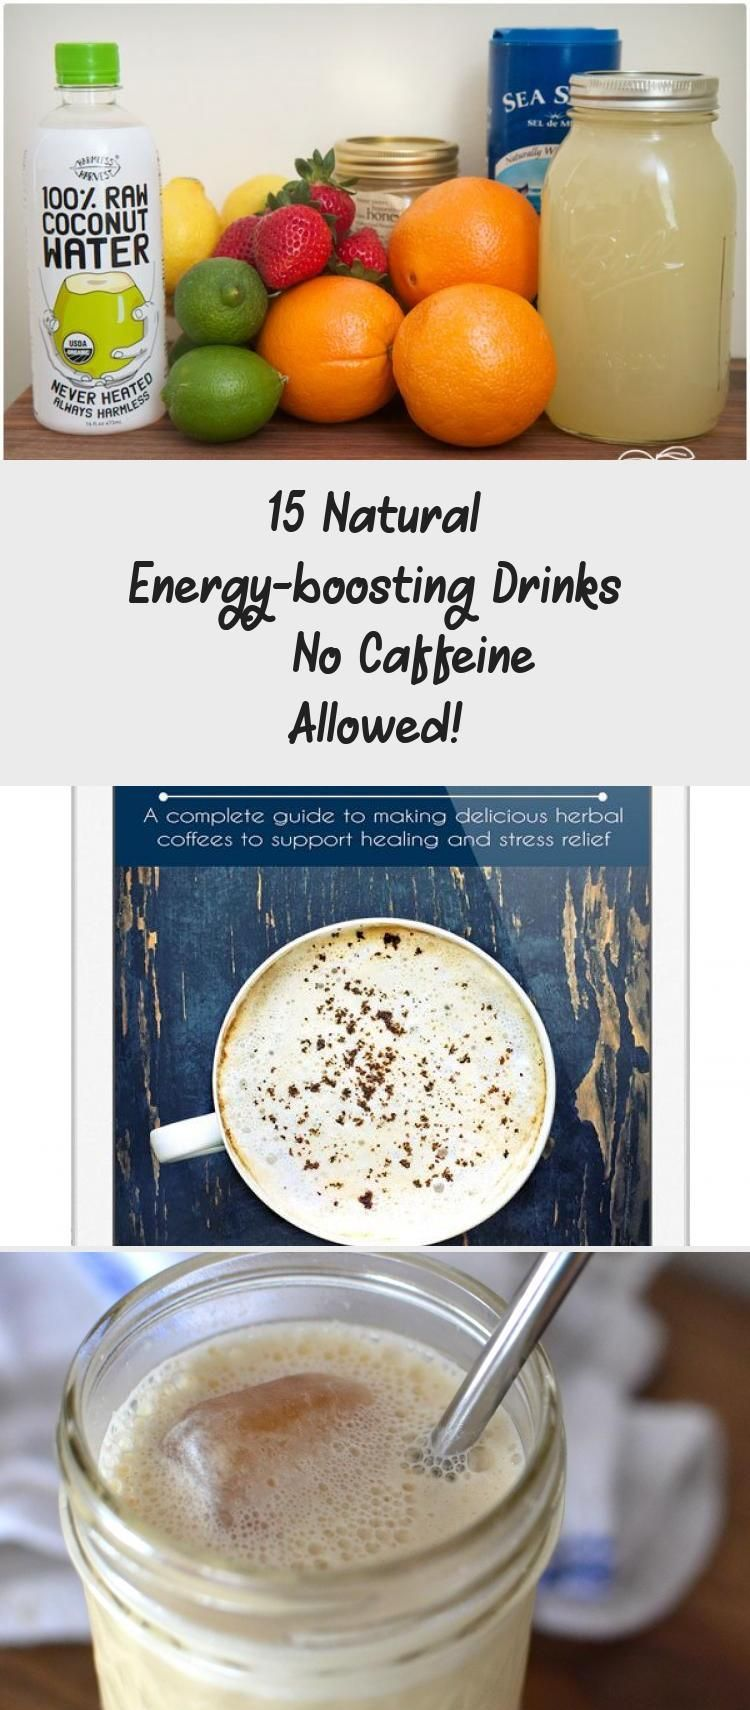 15 Natural Energy Boosting Drinks No Caffeine Allowed In 2020 Healthy Drinks Caffeine Free Drinks Energy Smoothies